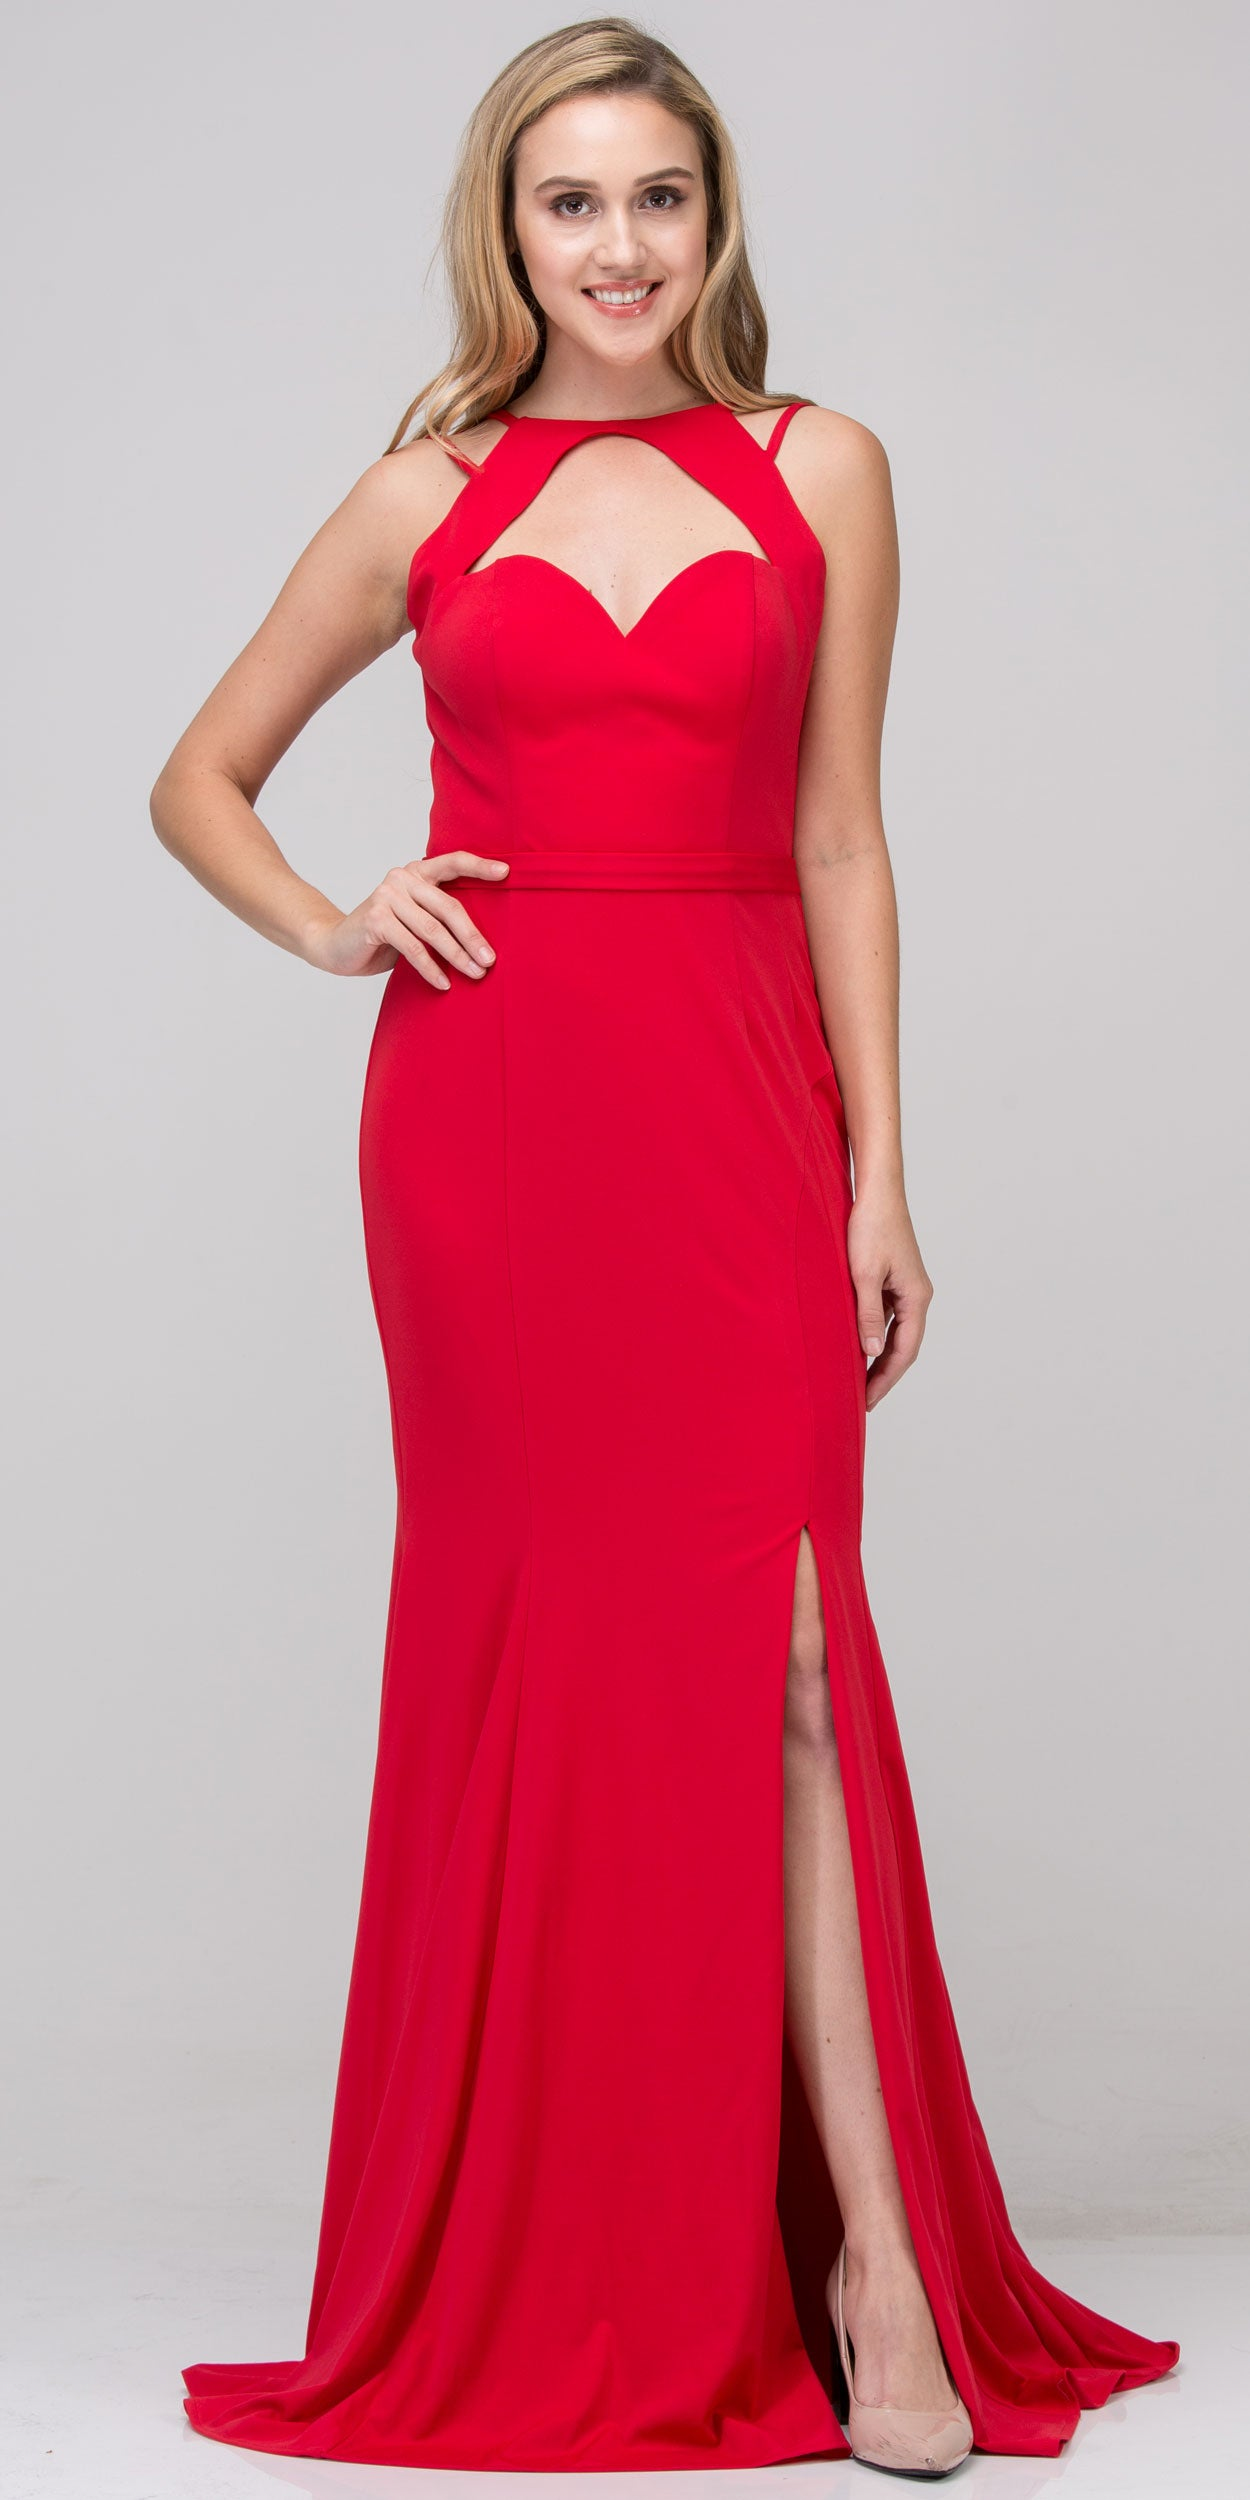 Image of Cutout Sweetheart Neckline Long Fitted Formal Prom Dress in Red